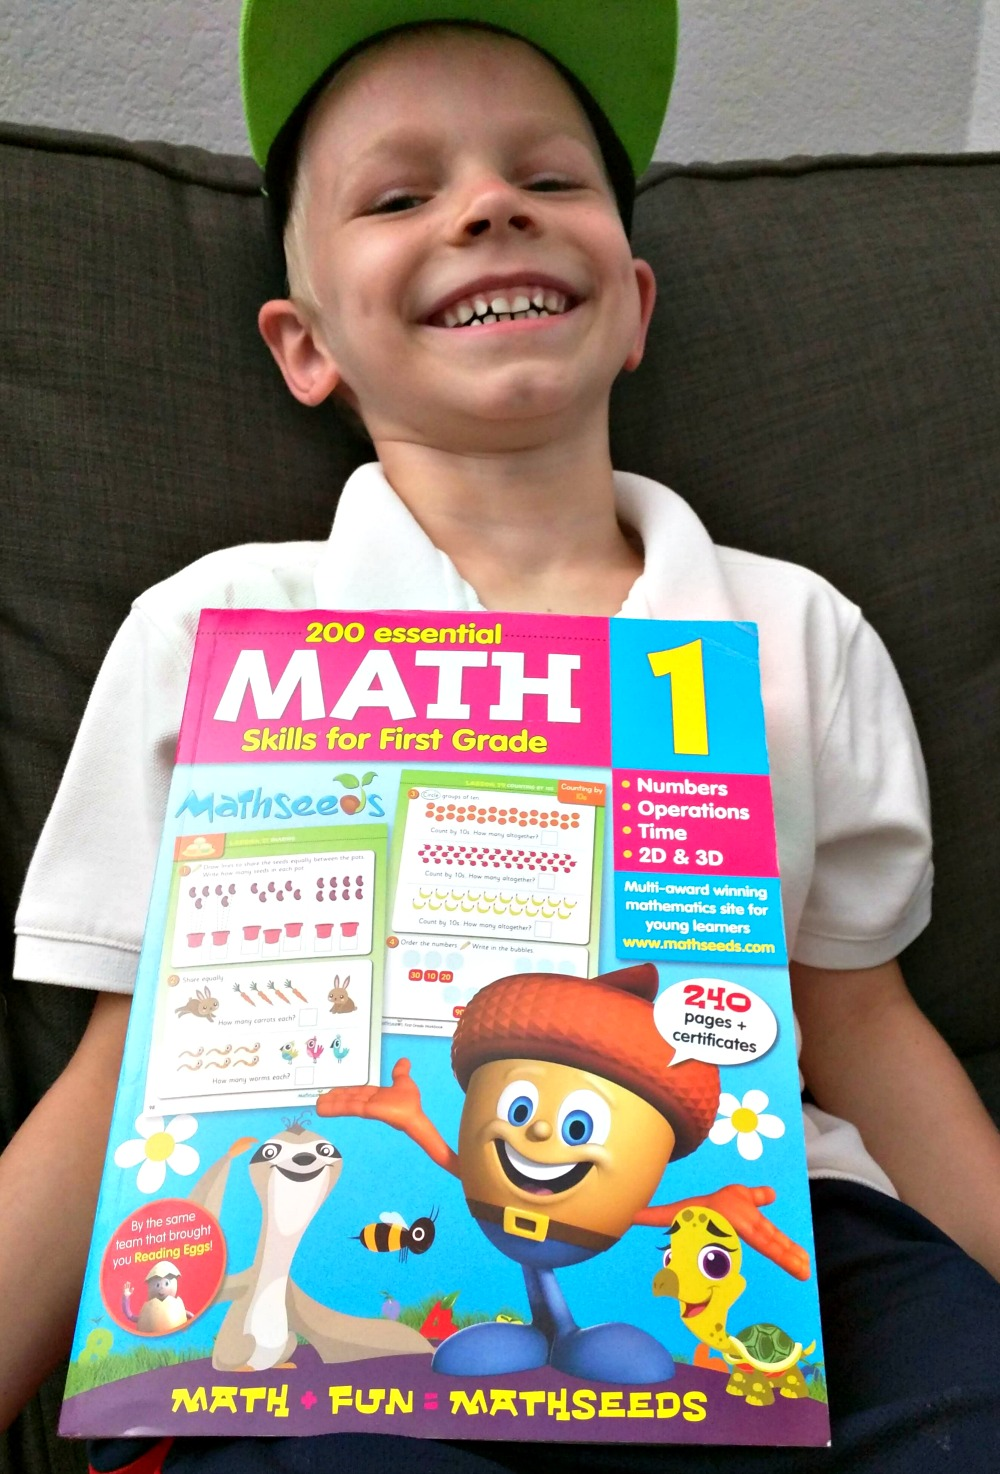 Mathseeds 200 Essential Math Skills for First Grade Full-Color Workbook